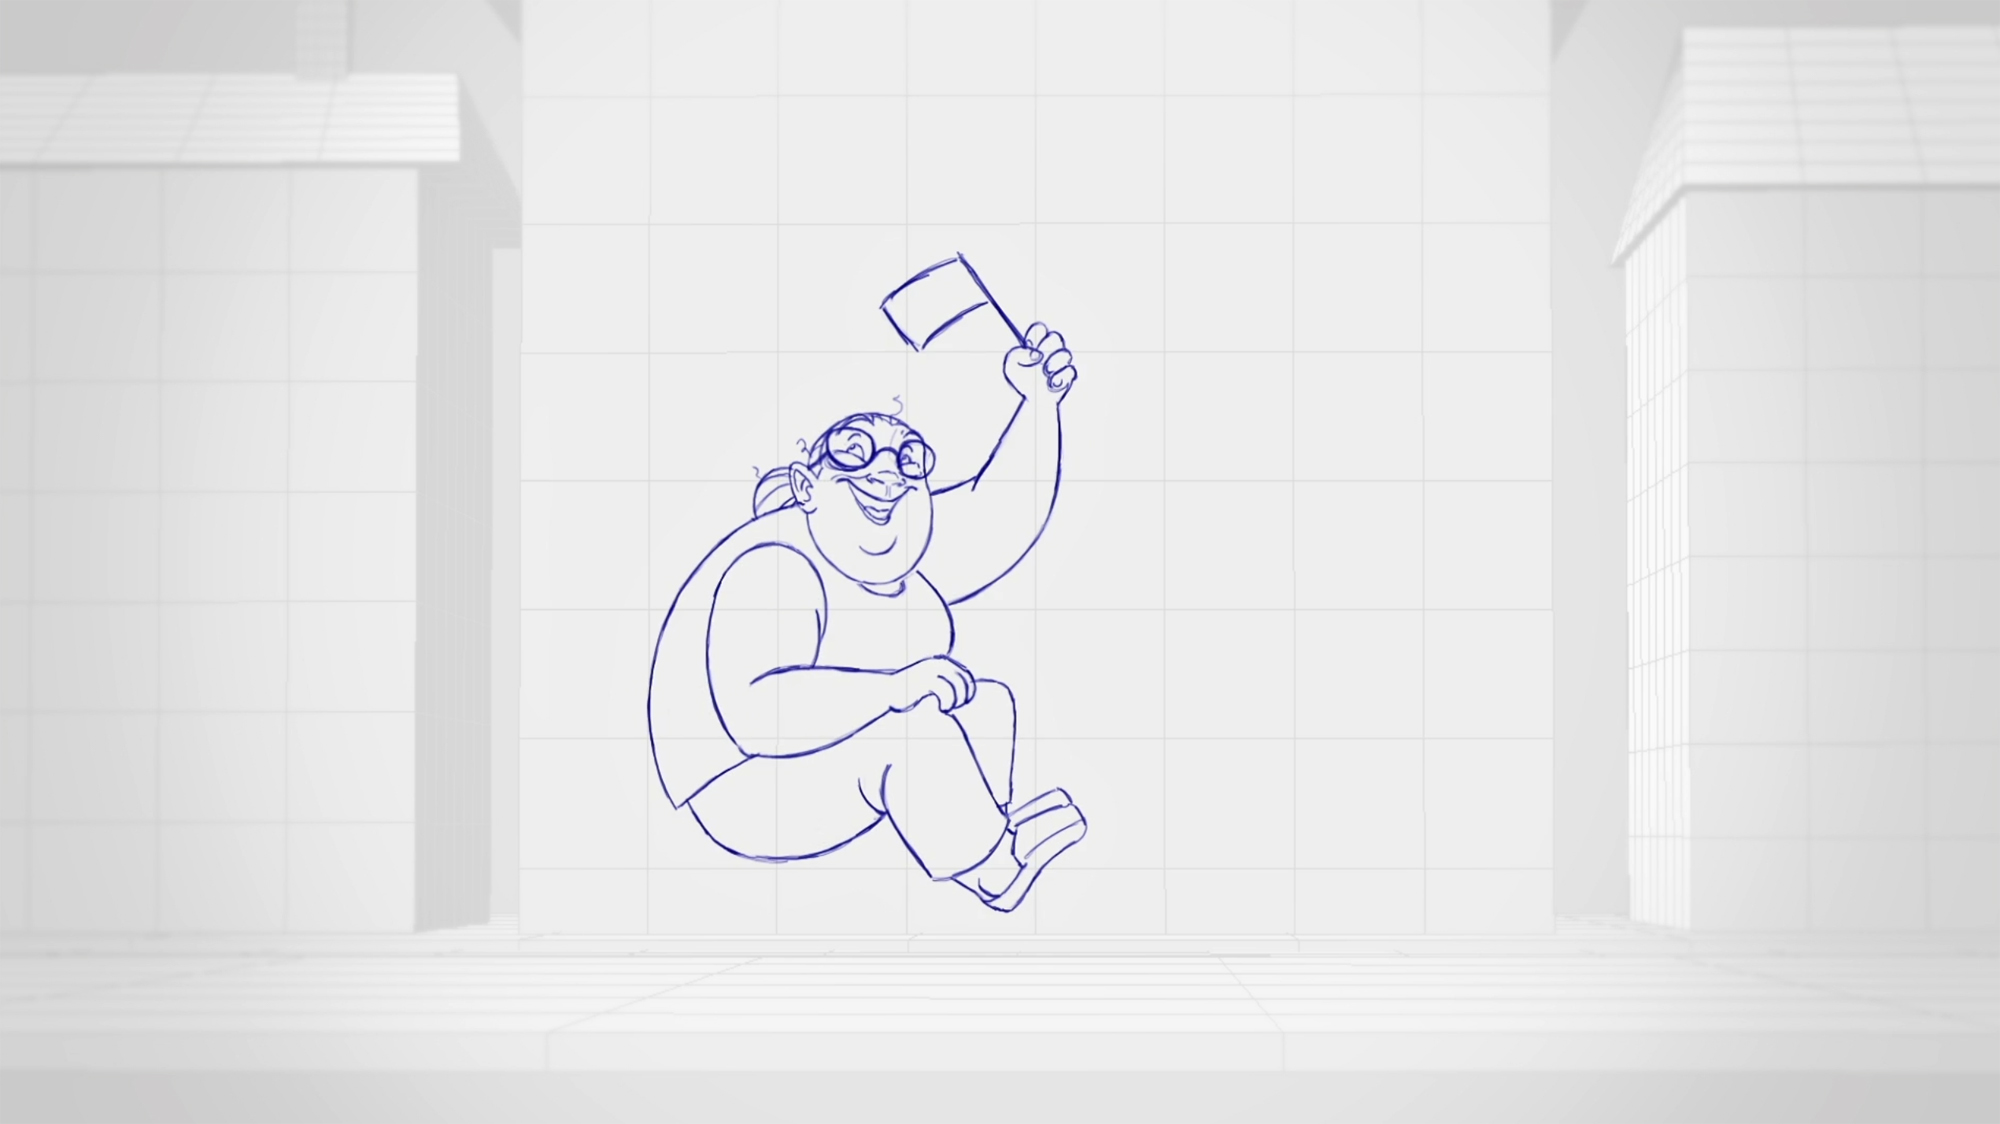 Initial drawing for the O2 England rugby ad